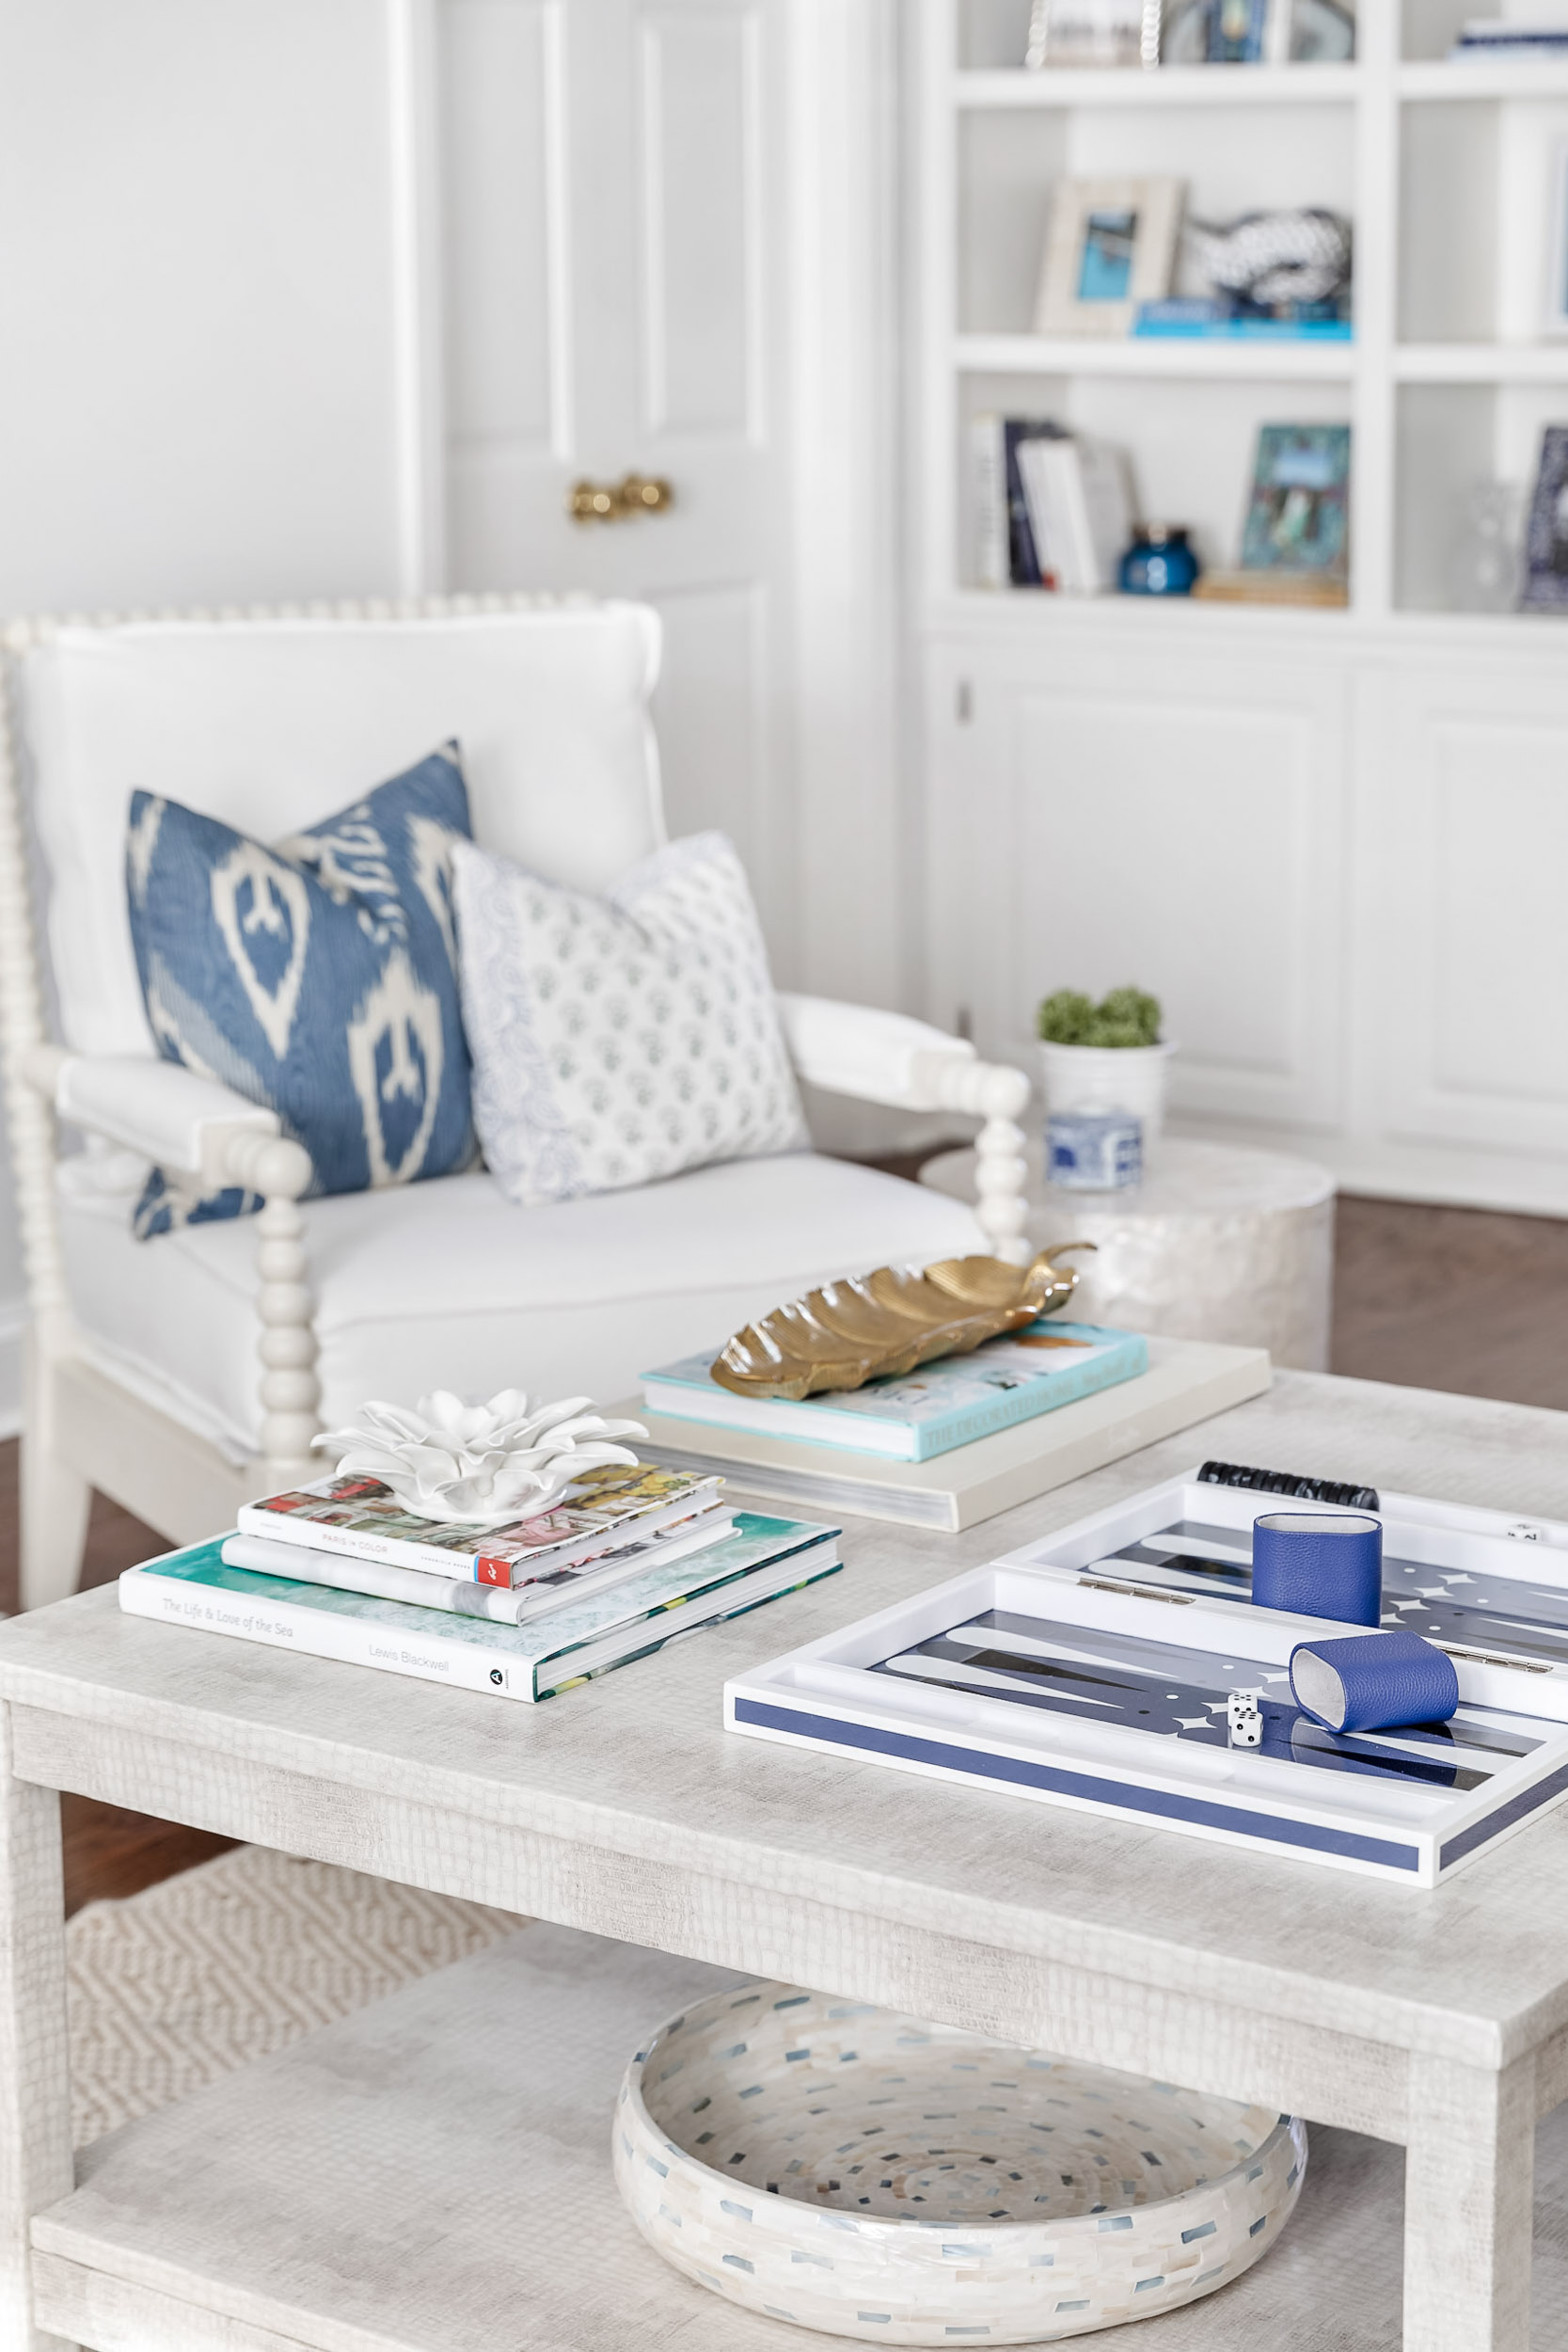 Product photography of a styled coffee table in a Riverside, Connecticut home.